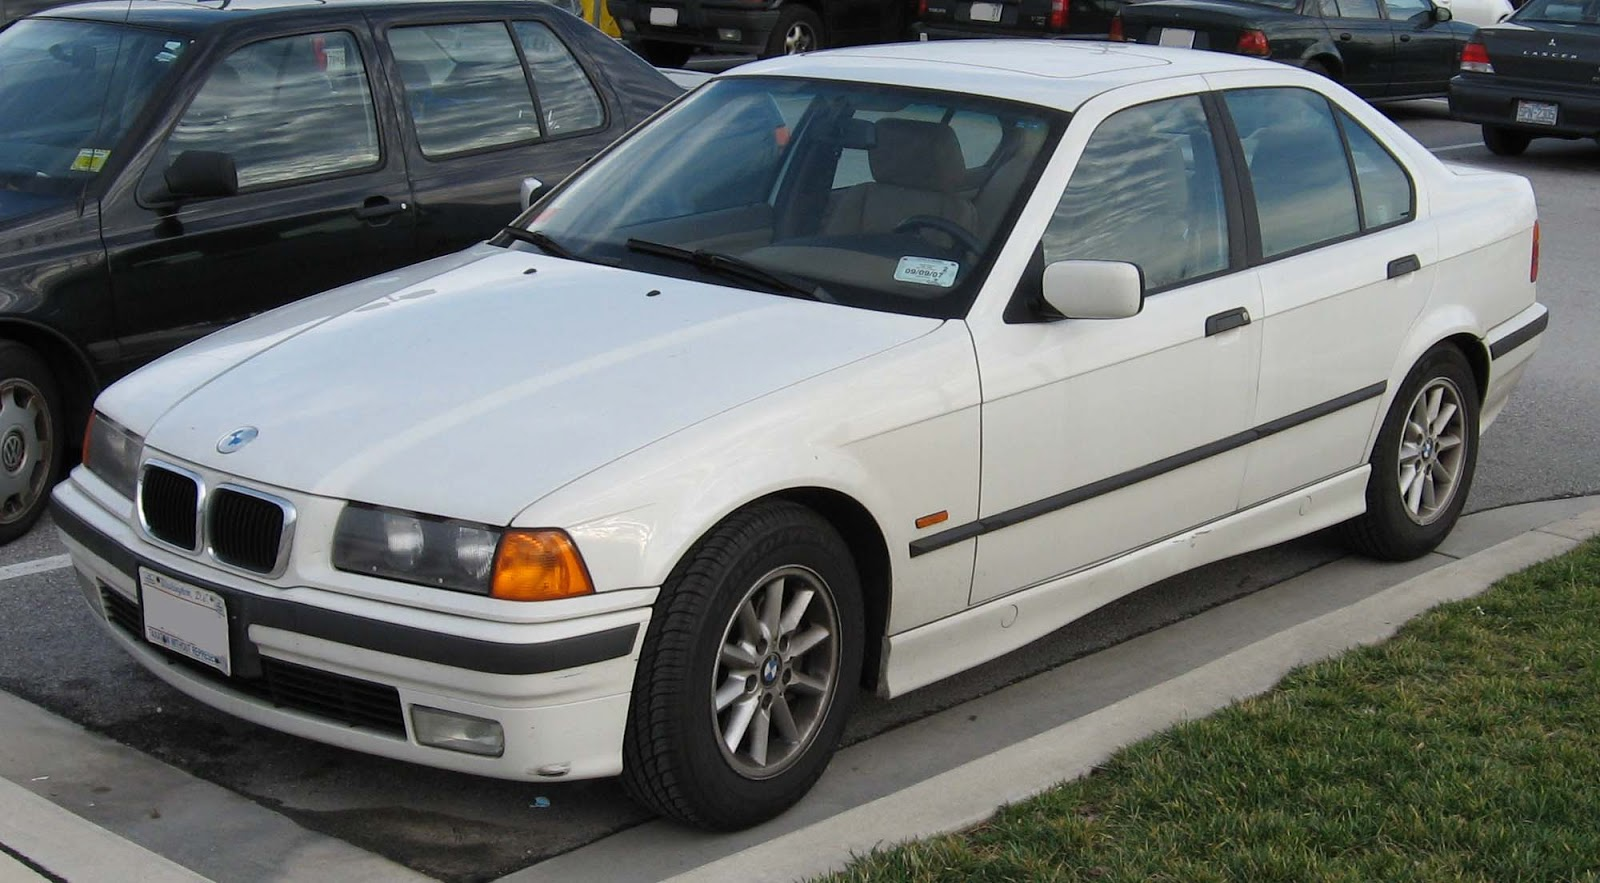 1994 BMW 320i - Car Photo and Specs